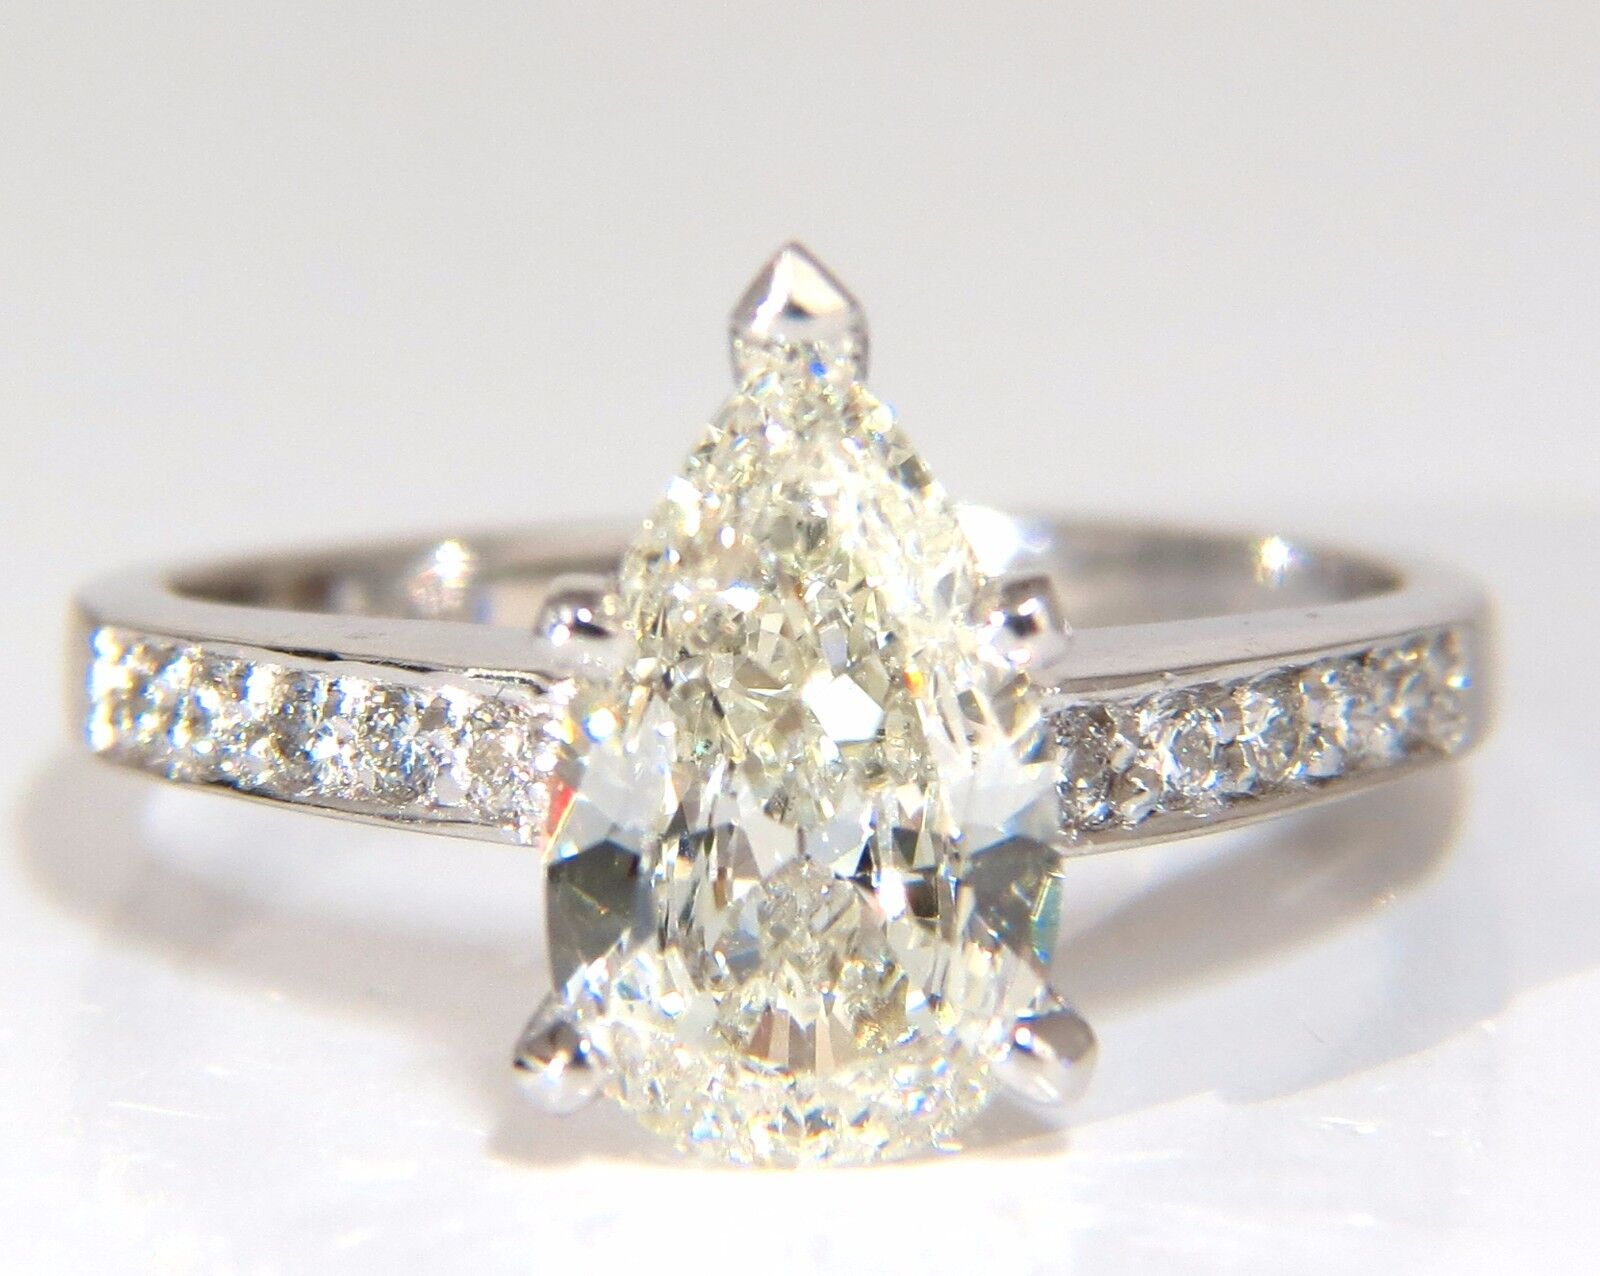 GIA Certified 1.49ct Pear Shape diamond ring .20ct. round accents 14kt 3